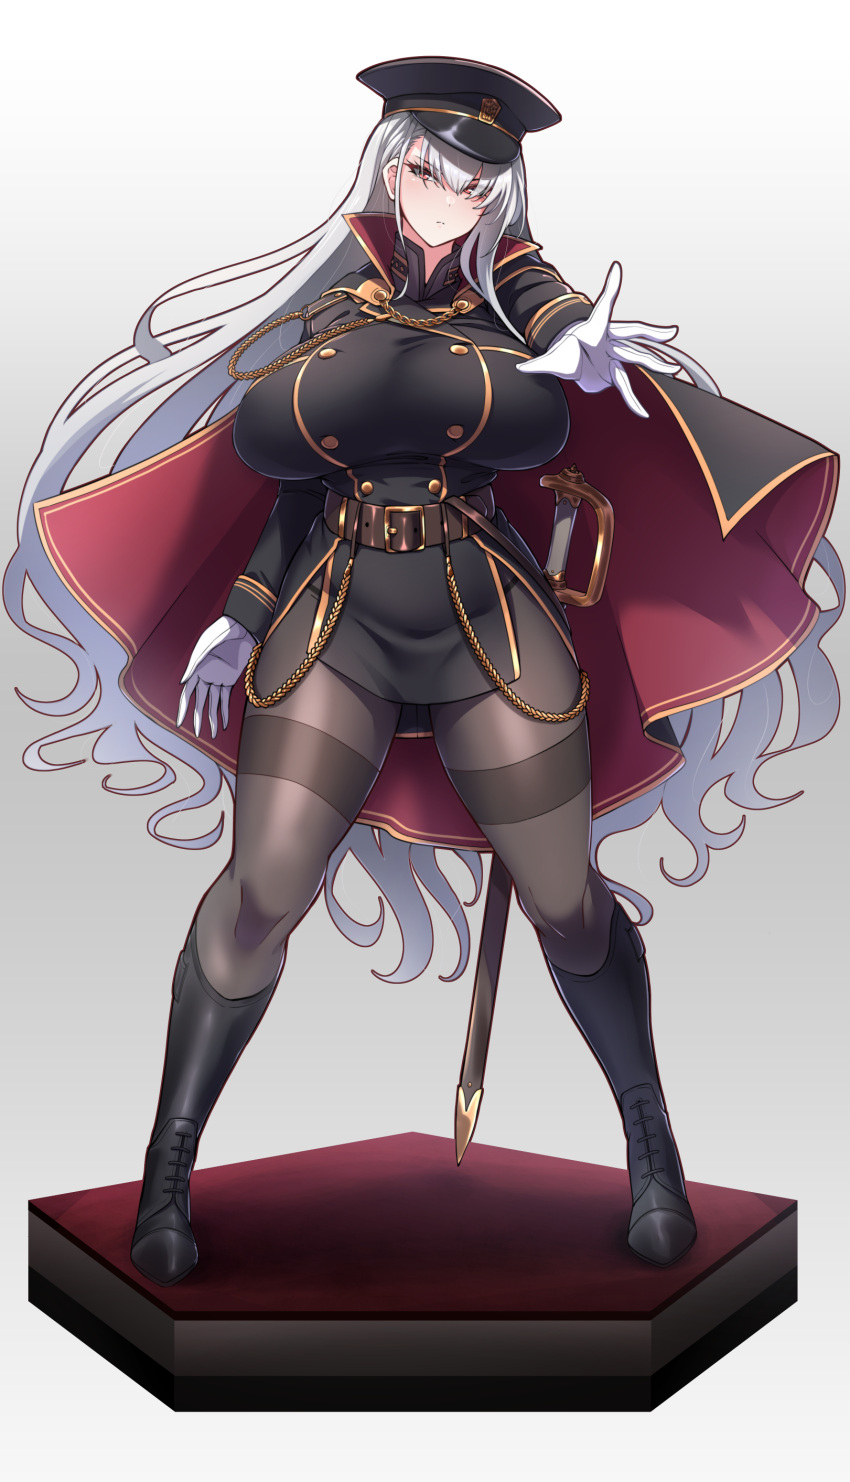 1girl absurdres belt black_clothes black_legwear boots breasts cape gloves hat highres huge_breasts knee_boots konoshige_(ryuun) long_hair looking_at_viewer military military_hat military_jacket military_uniform original pantyhose red_eyes riding_boots sheath silver_hair simple_background slender_waist solo sword thick_thighs thighband_pantyhose thighs uniform very_long_hair weapon white_background wide_hips